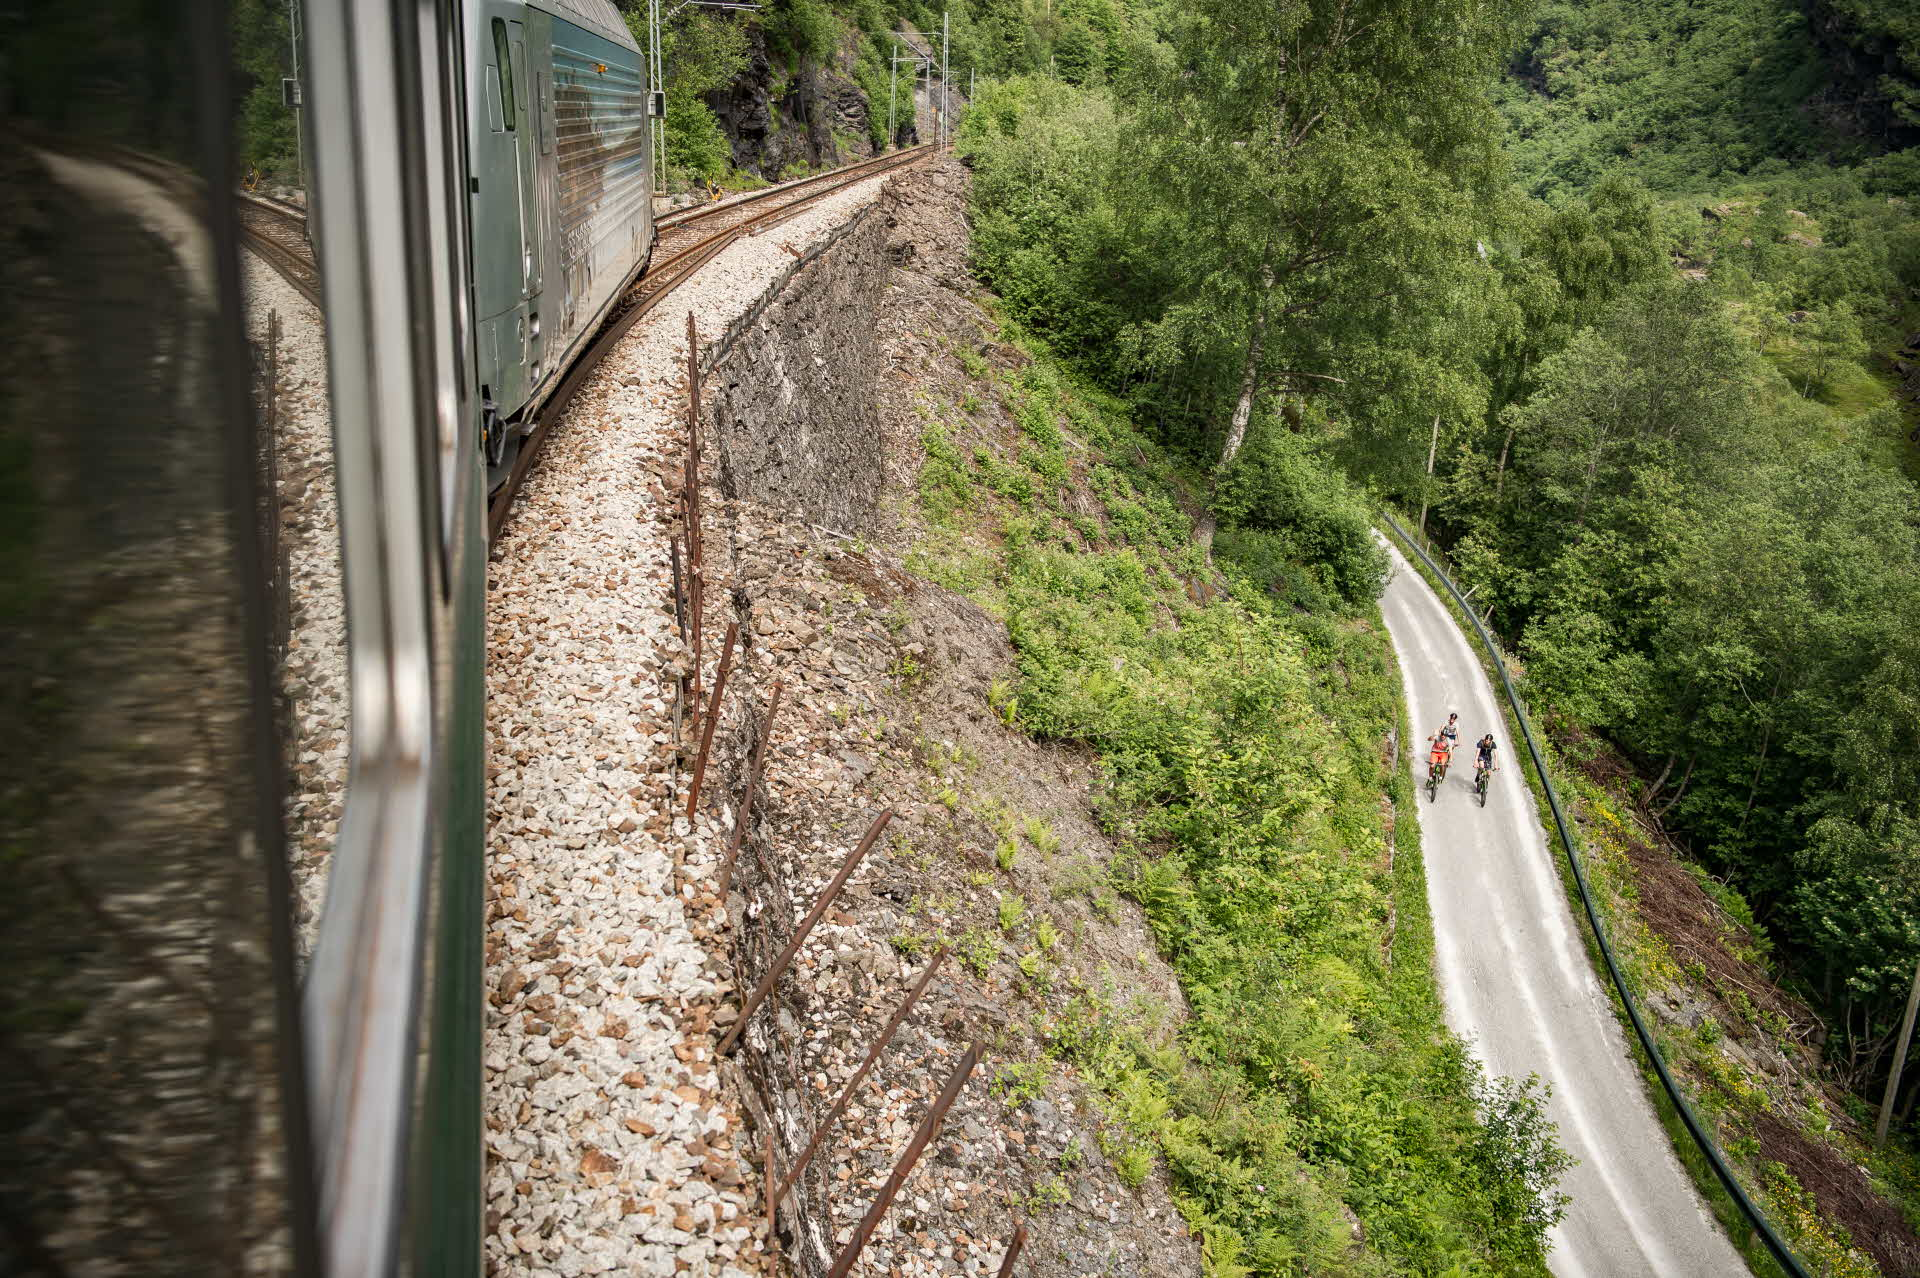 The side of Flåm Railway viewed from a train window and two cyclists on Rallarvegen below